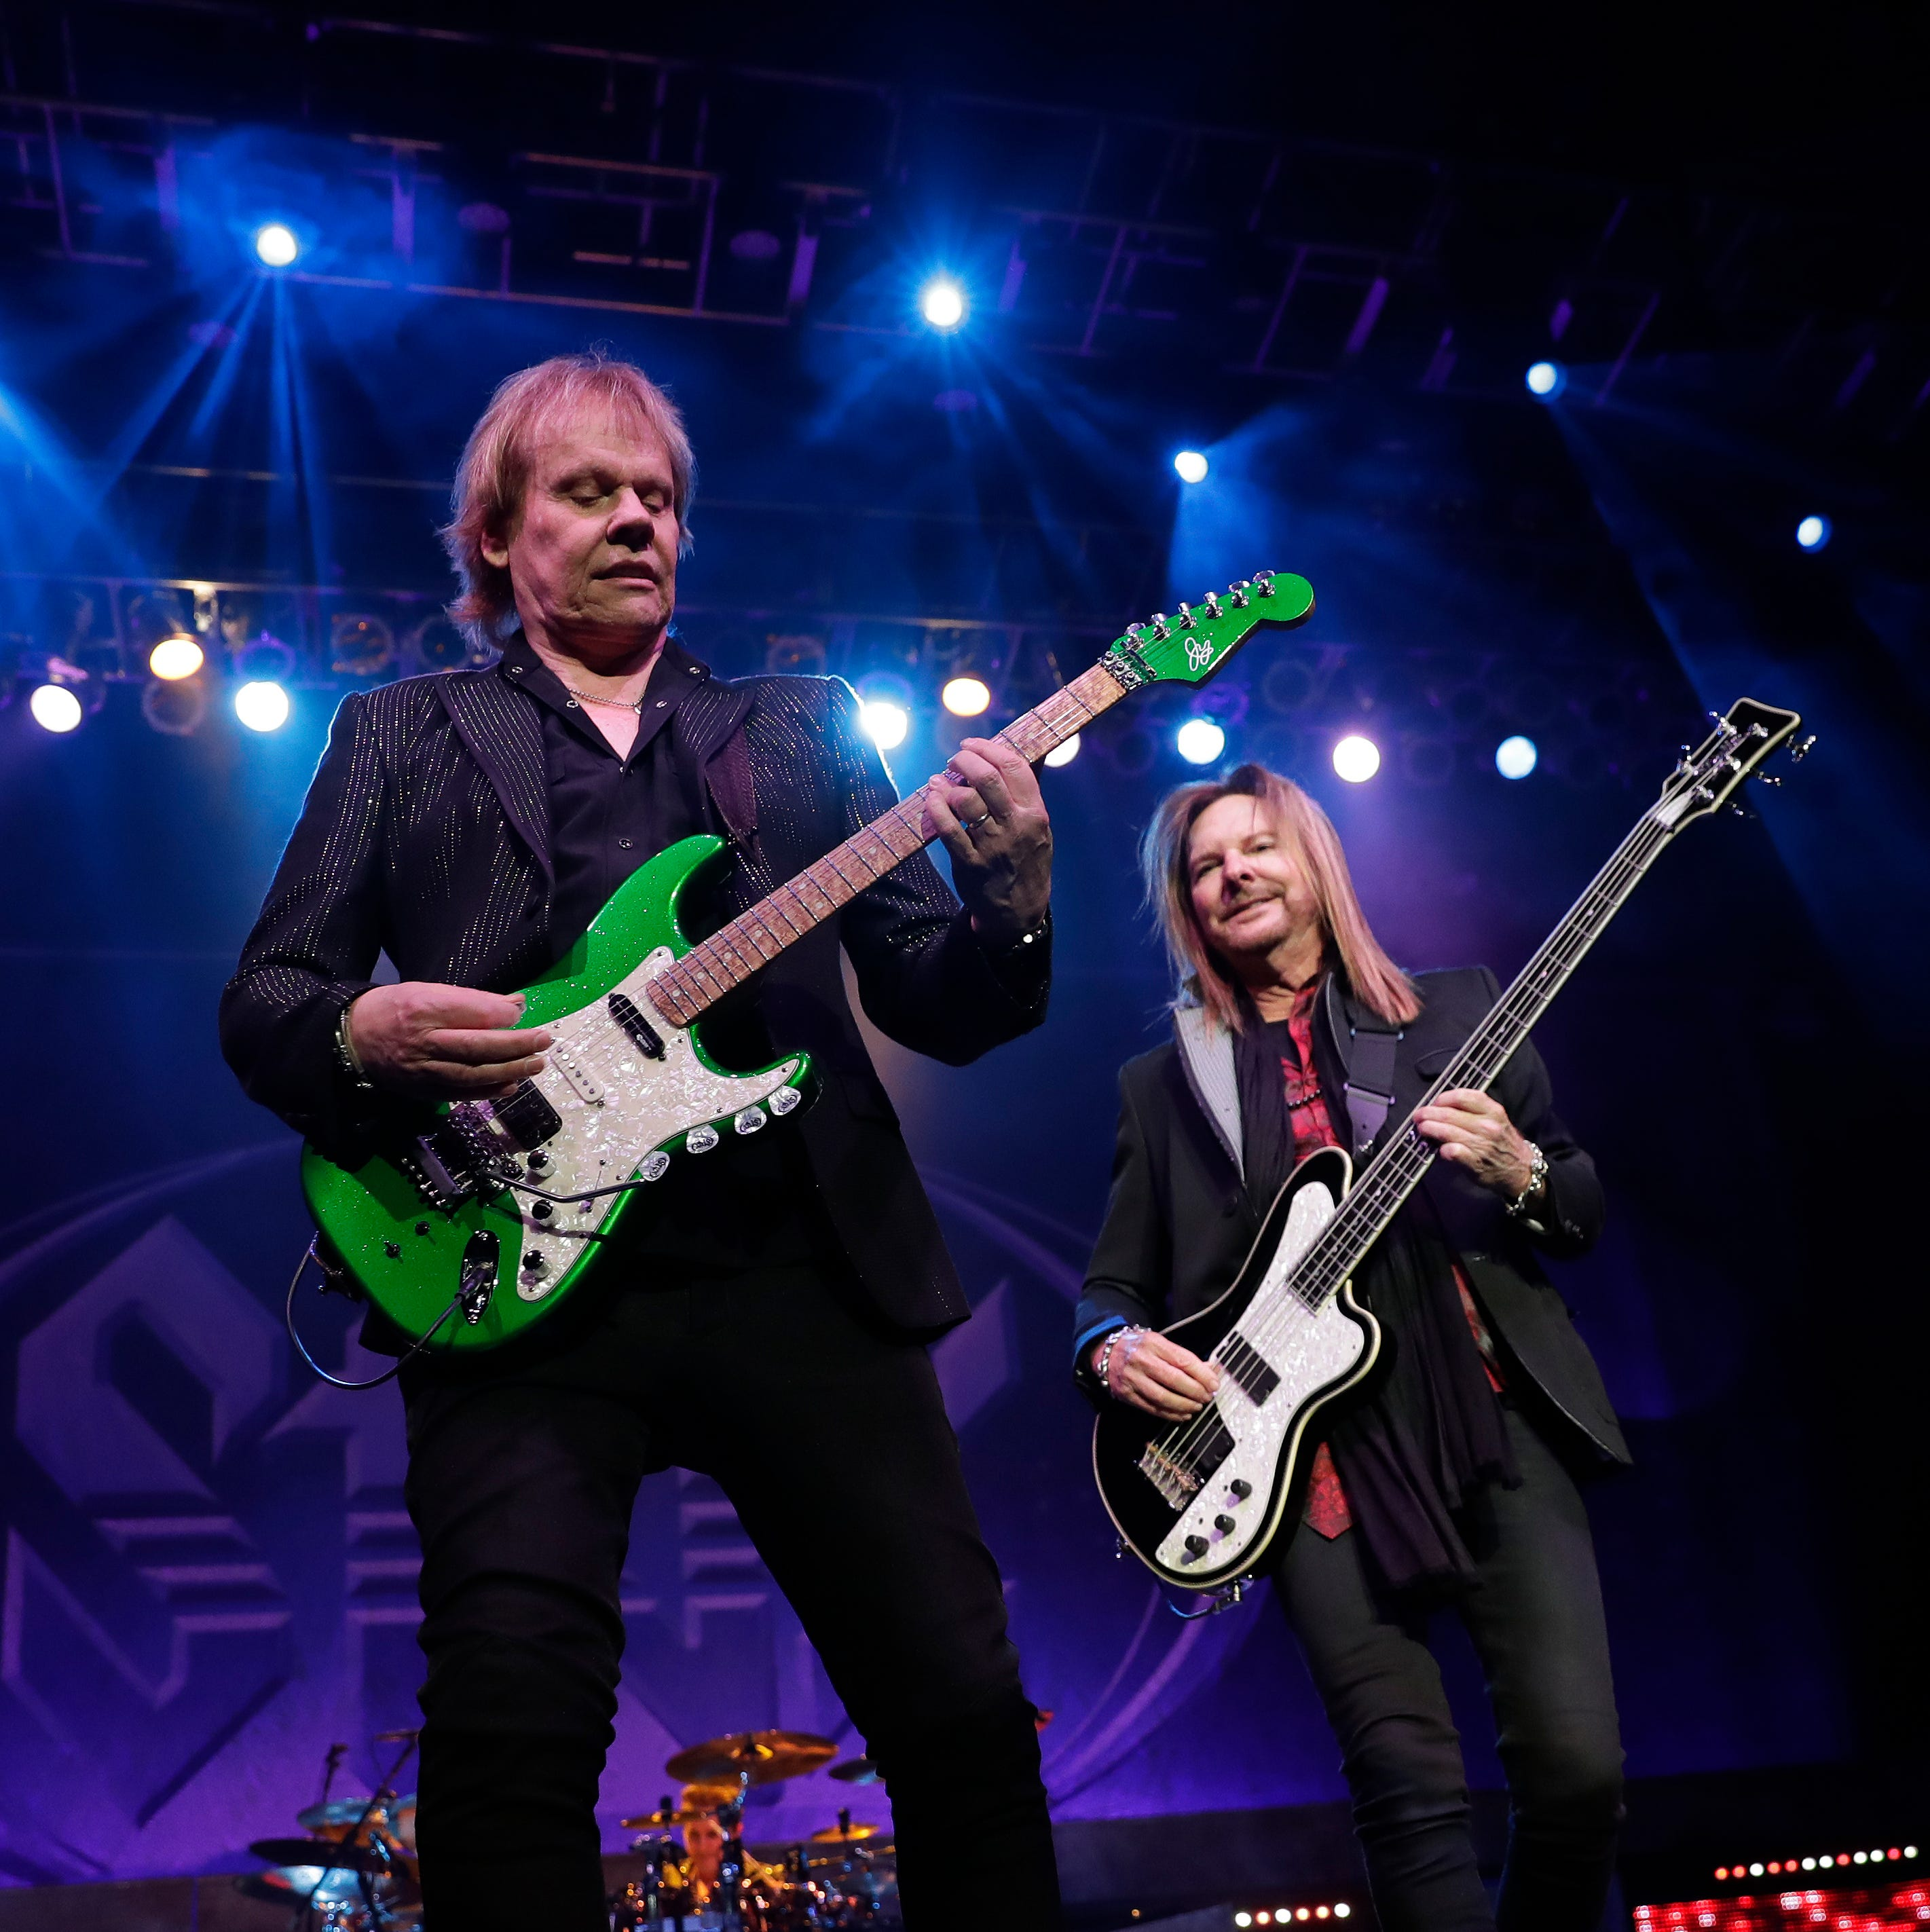 Rock band Styx among first wave of bands to perform at Jellyfish Festival in Ocean City